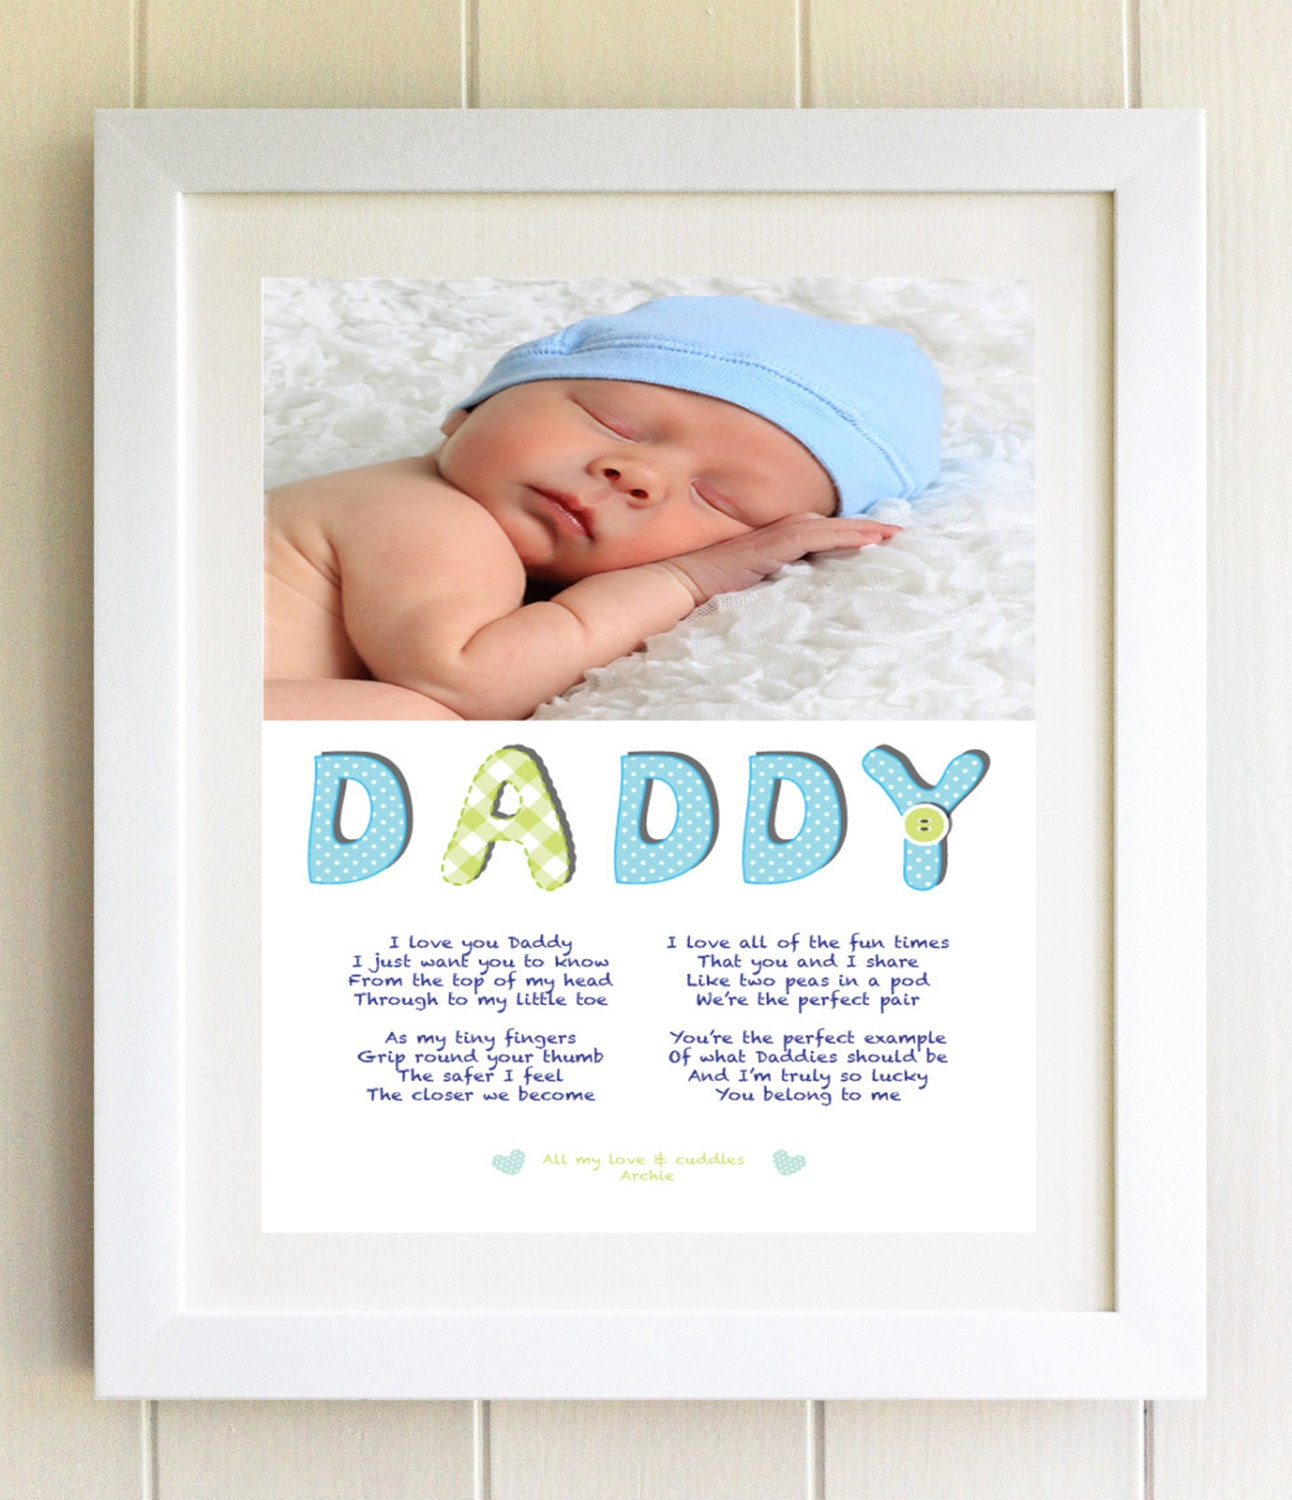 New Daddy Dad Gift Personalised Plaque Poem Framed Photo Birthday Present Idea Unique Baby To